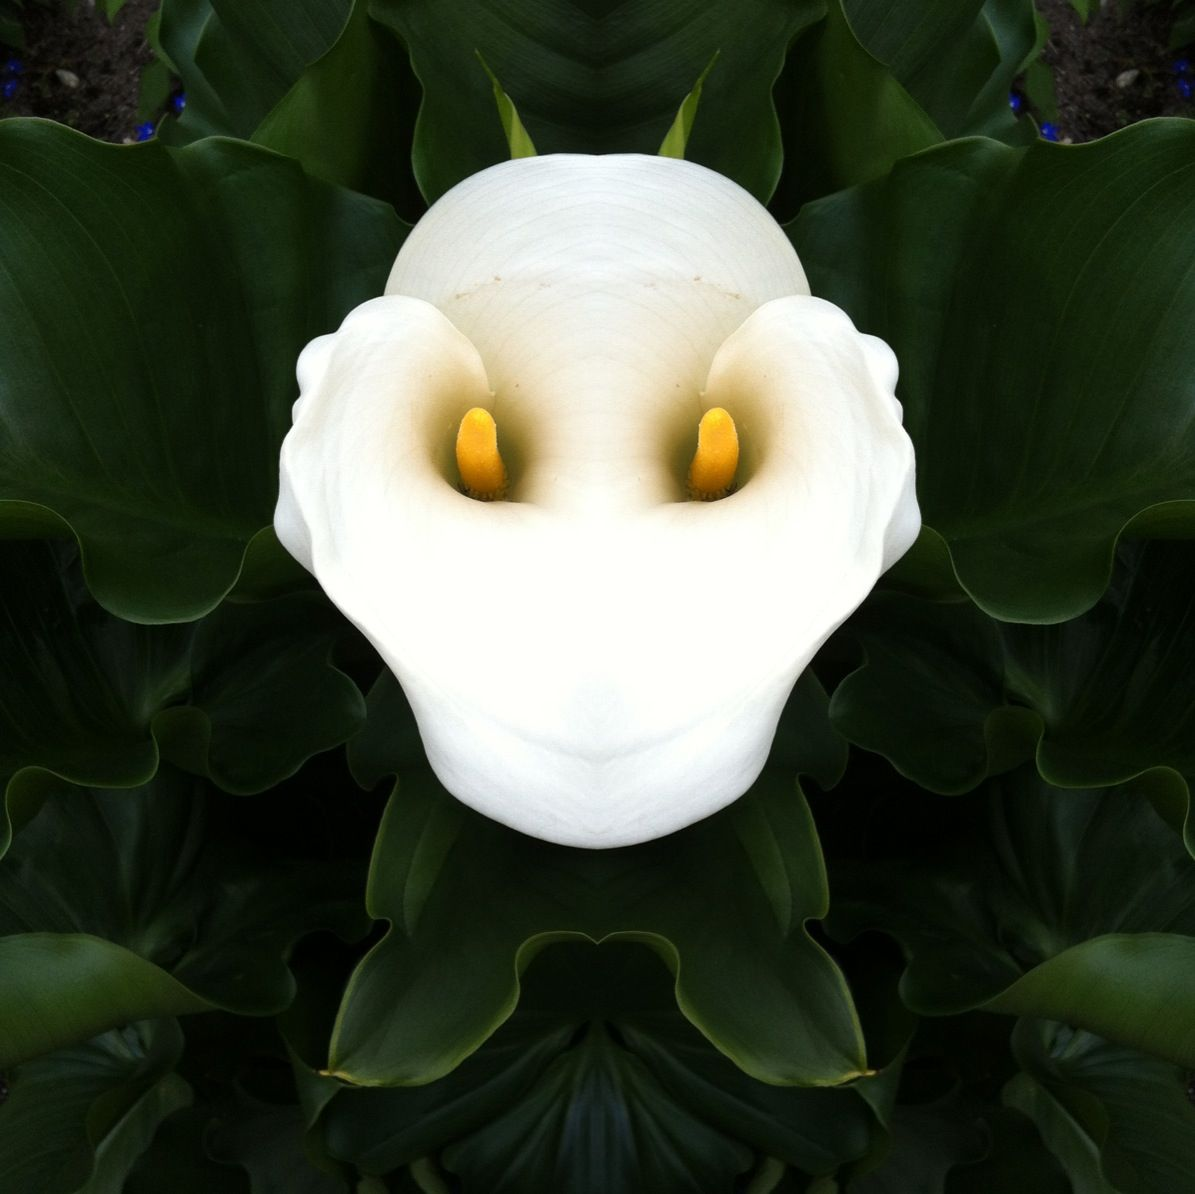 Strange Flower Nature Pinterest Strange Flowers Flower And